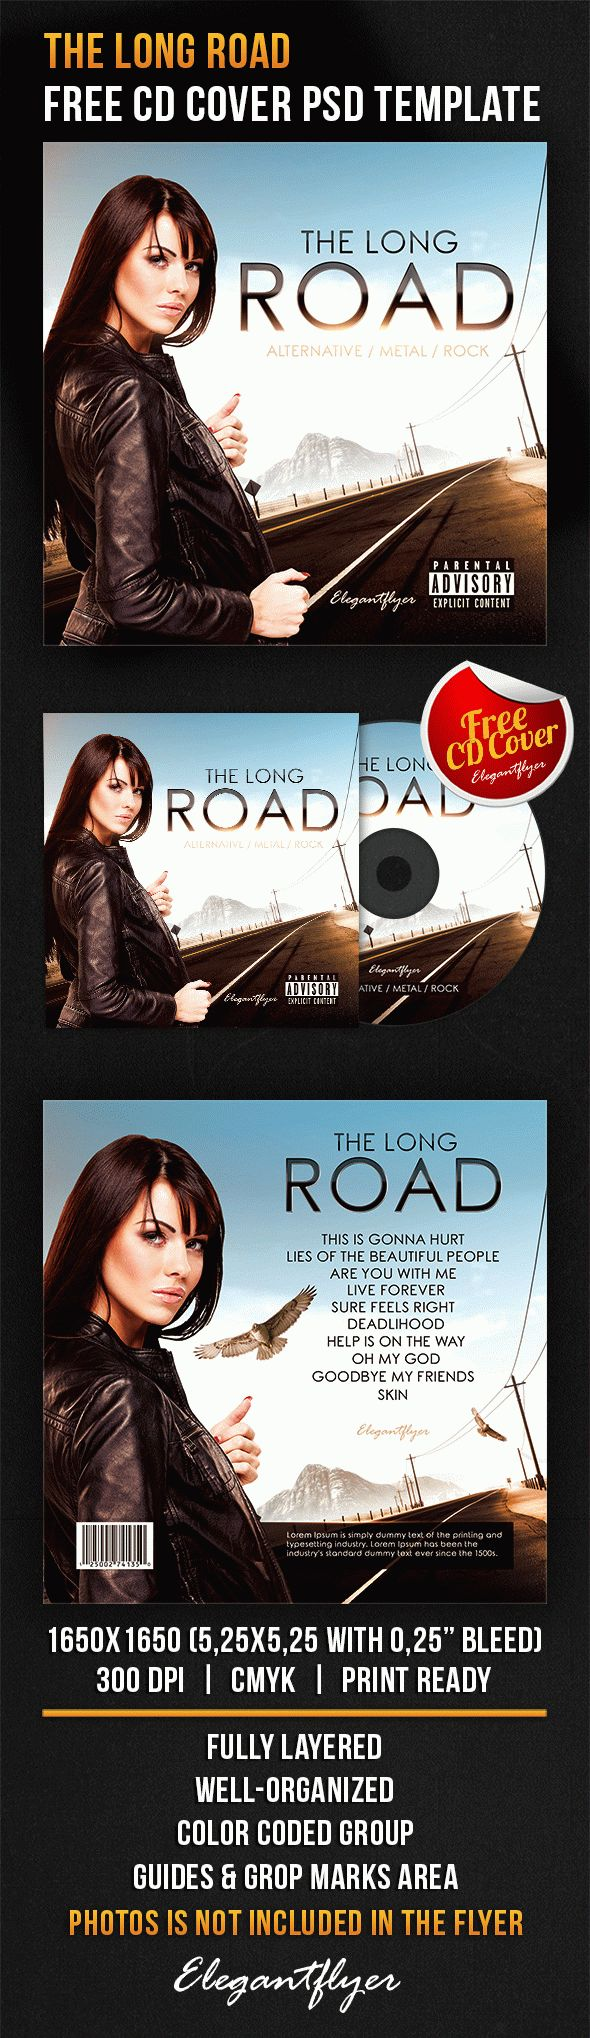 the long road free cd cover psd template free cd dvd cover